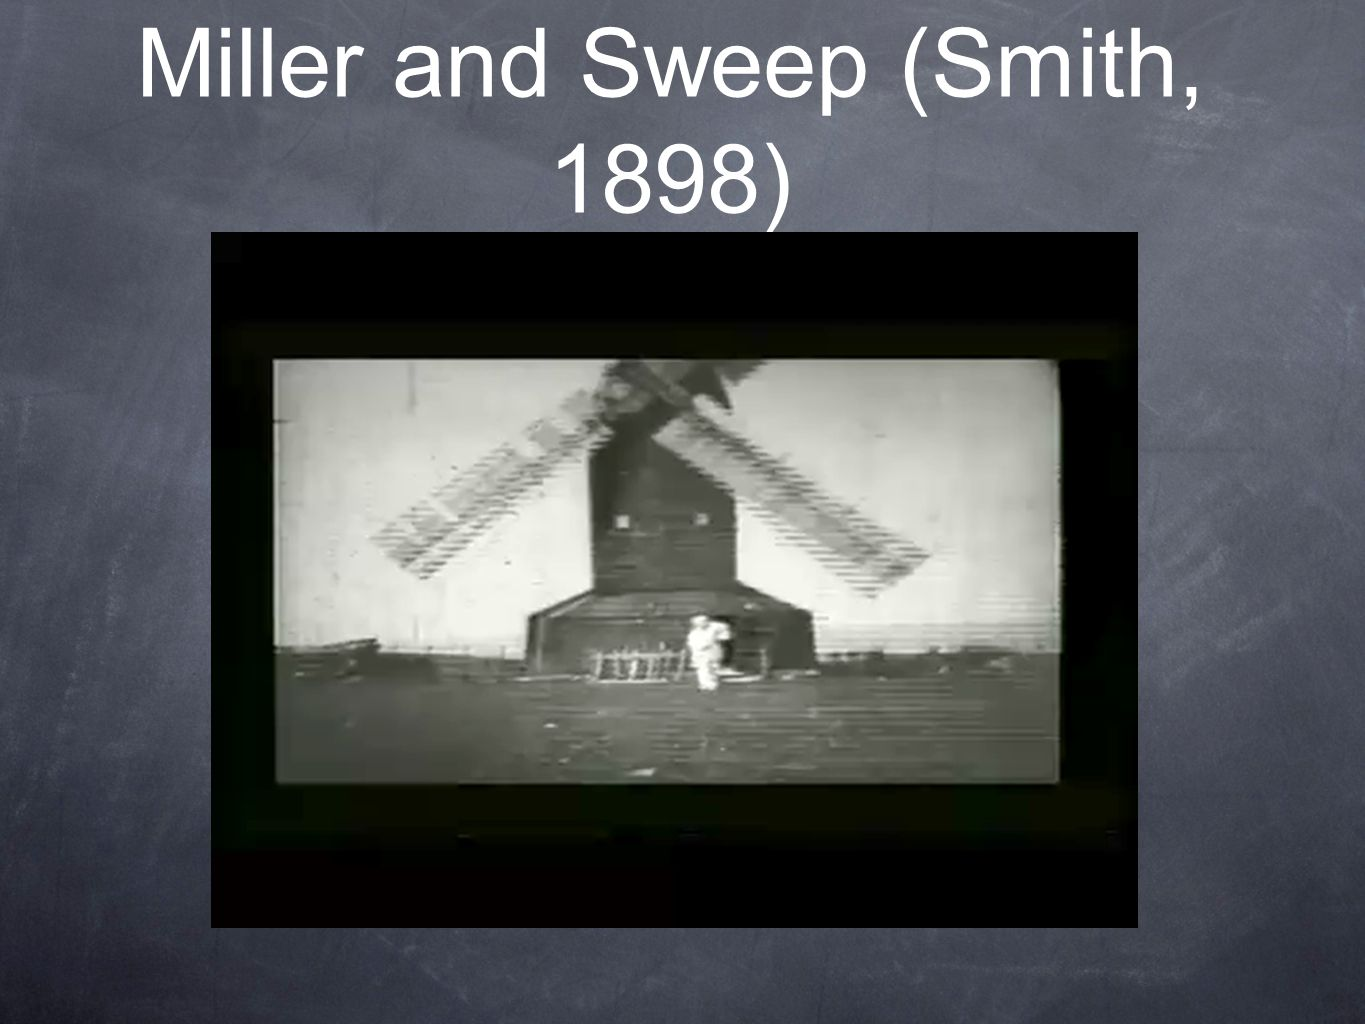 Miller and Sweep (Smith, 1898)